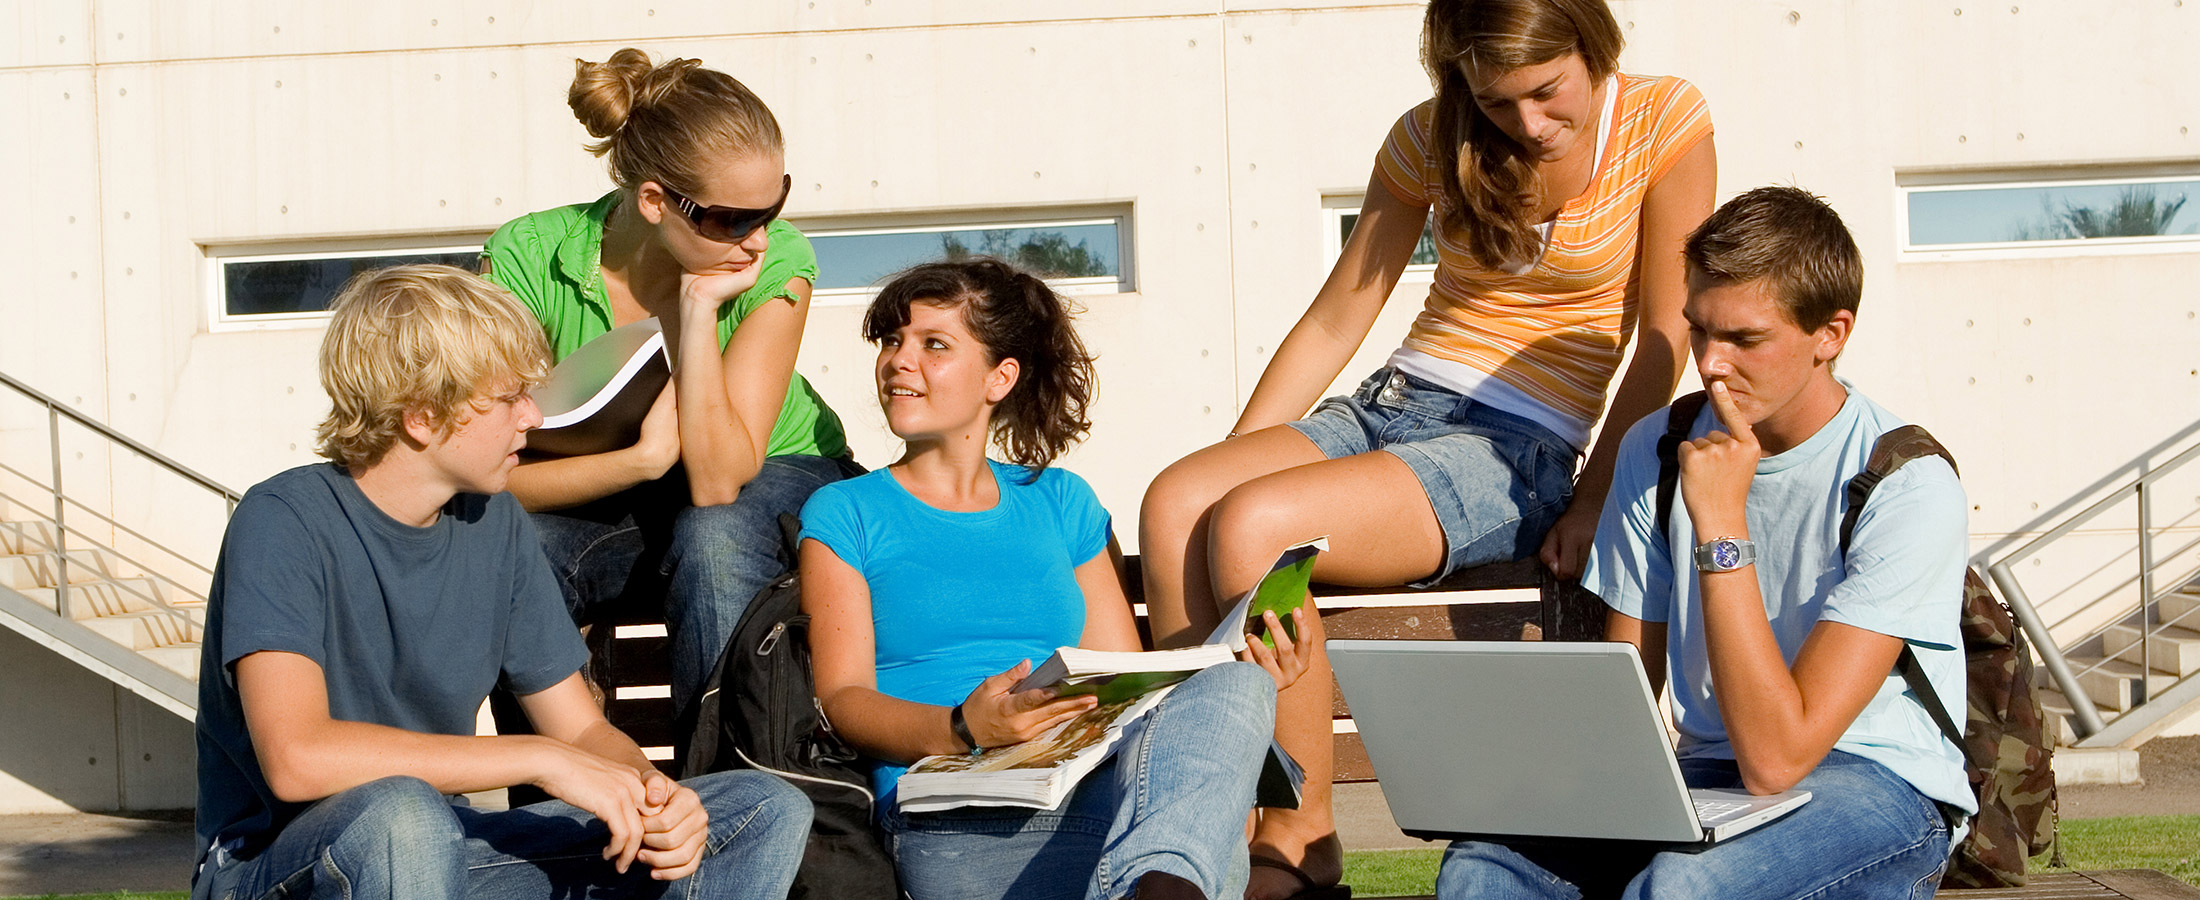 Get Access To The Online Research Paper Sale And Enhance Your Grade